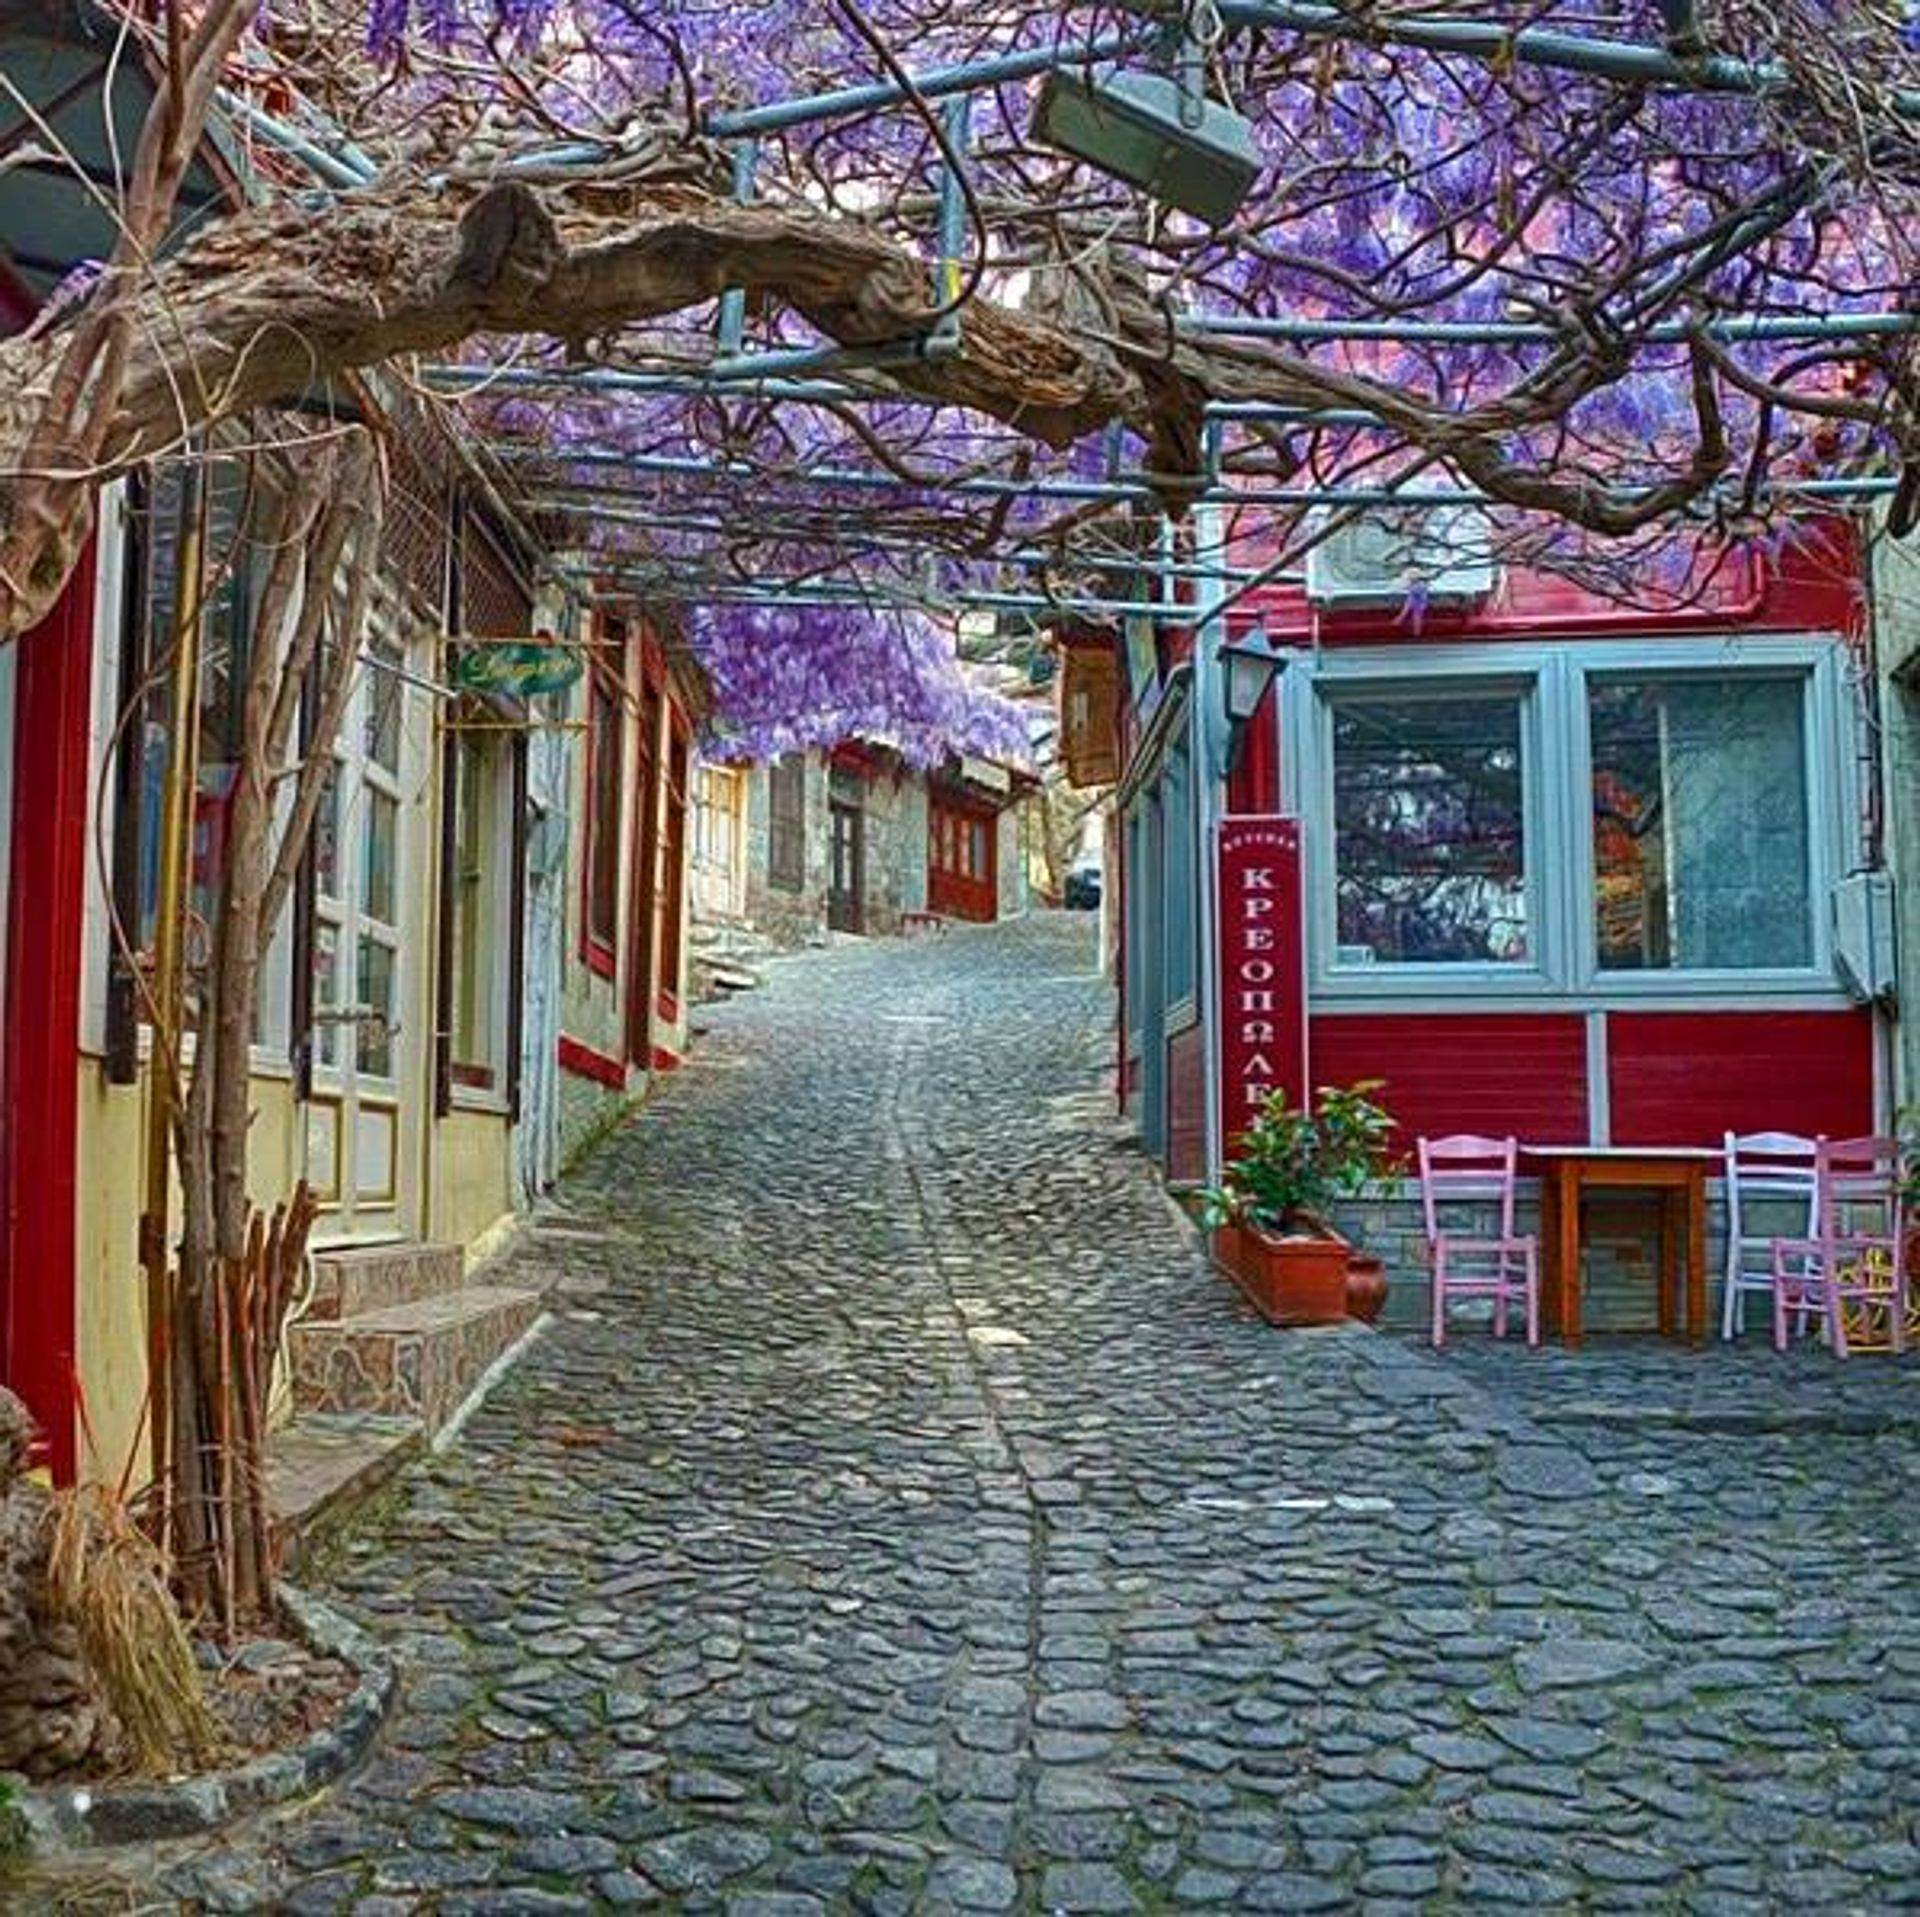 Molyvos, Lesvos, the most beautiful street in Europe, awarded